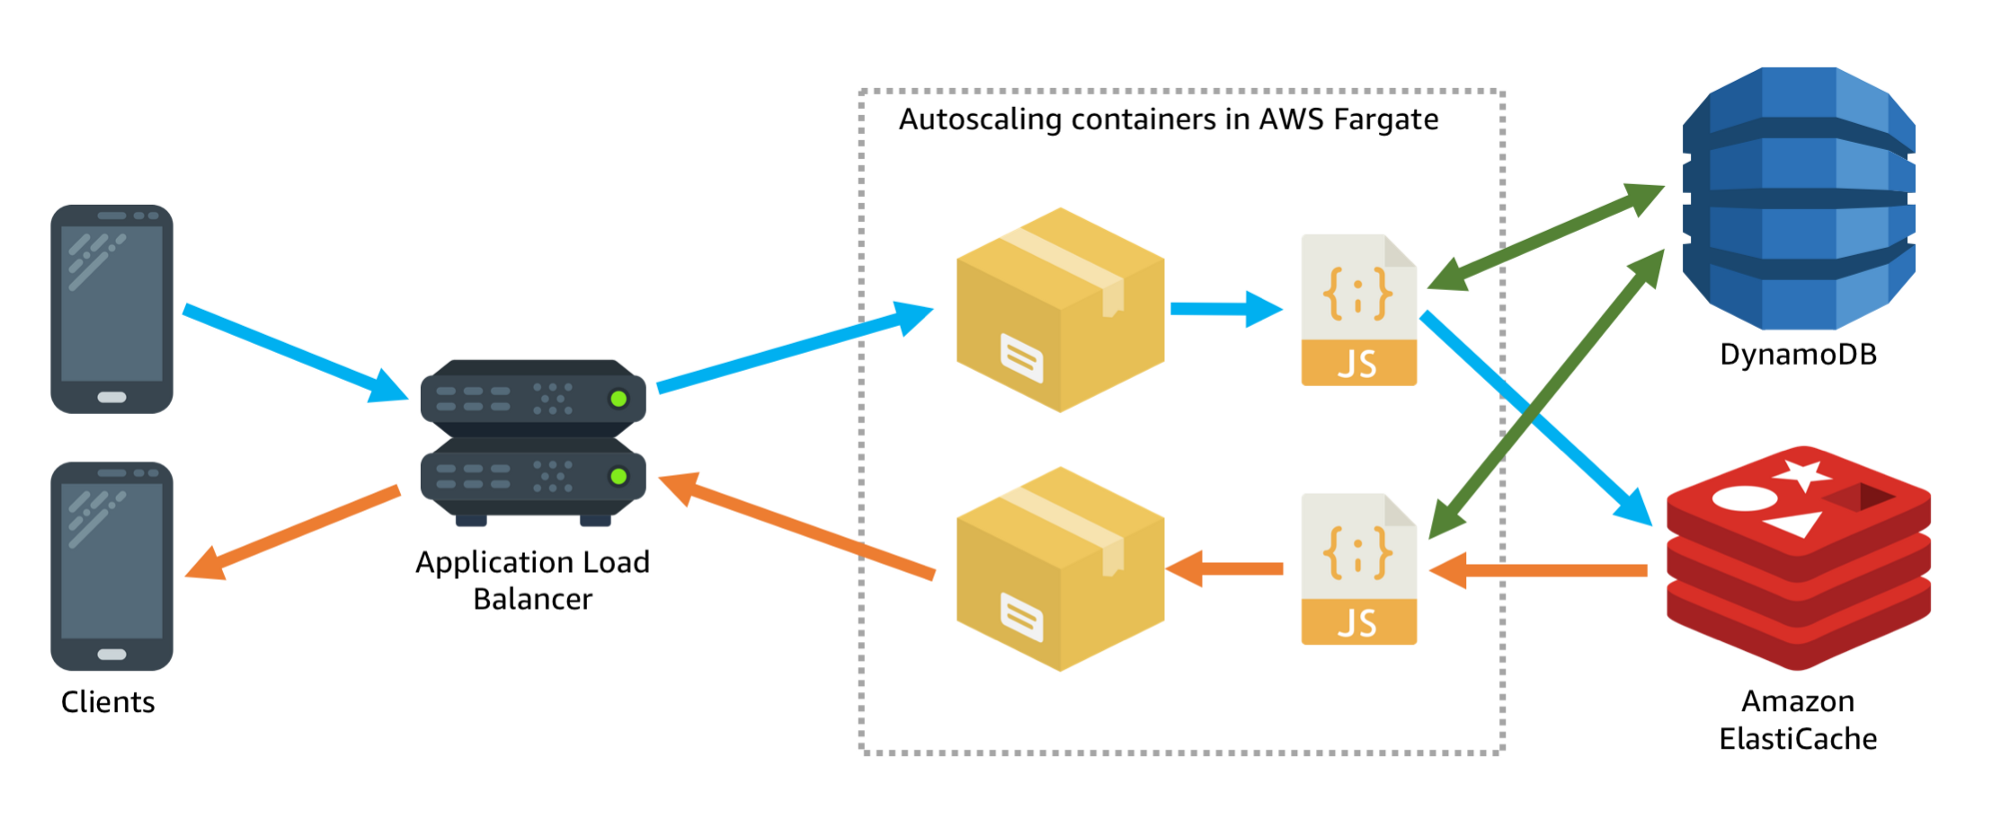 Making My Socketio Chat App Production Ready With Vuejs Dynamodb Circuit Diagram Javascript Autoscaling Container Tasks In Fargate